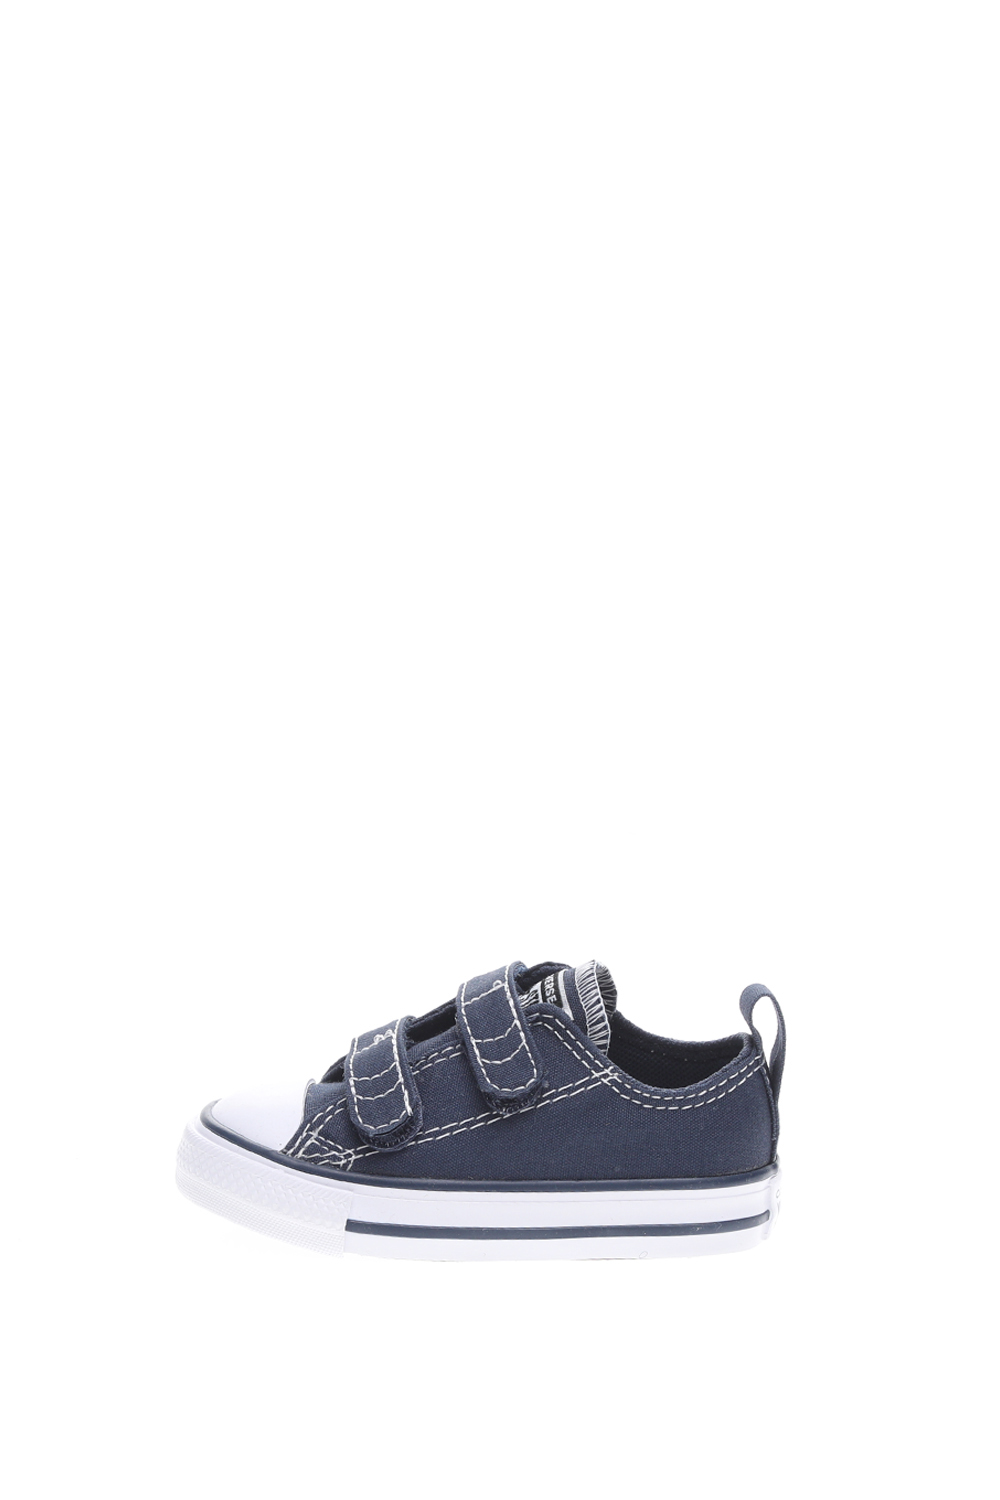 CONVERSE – Βρεφικά sneakers CONVERSE Chuck Taylor All Star 2V μπλε